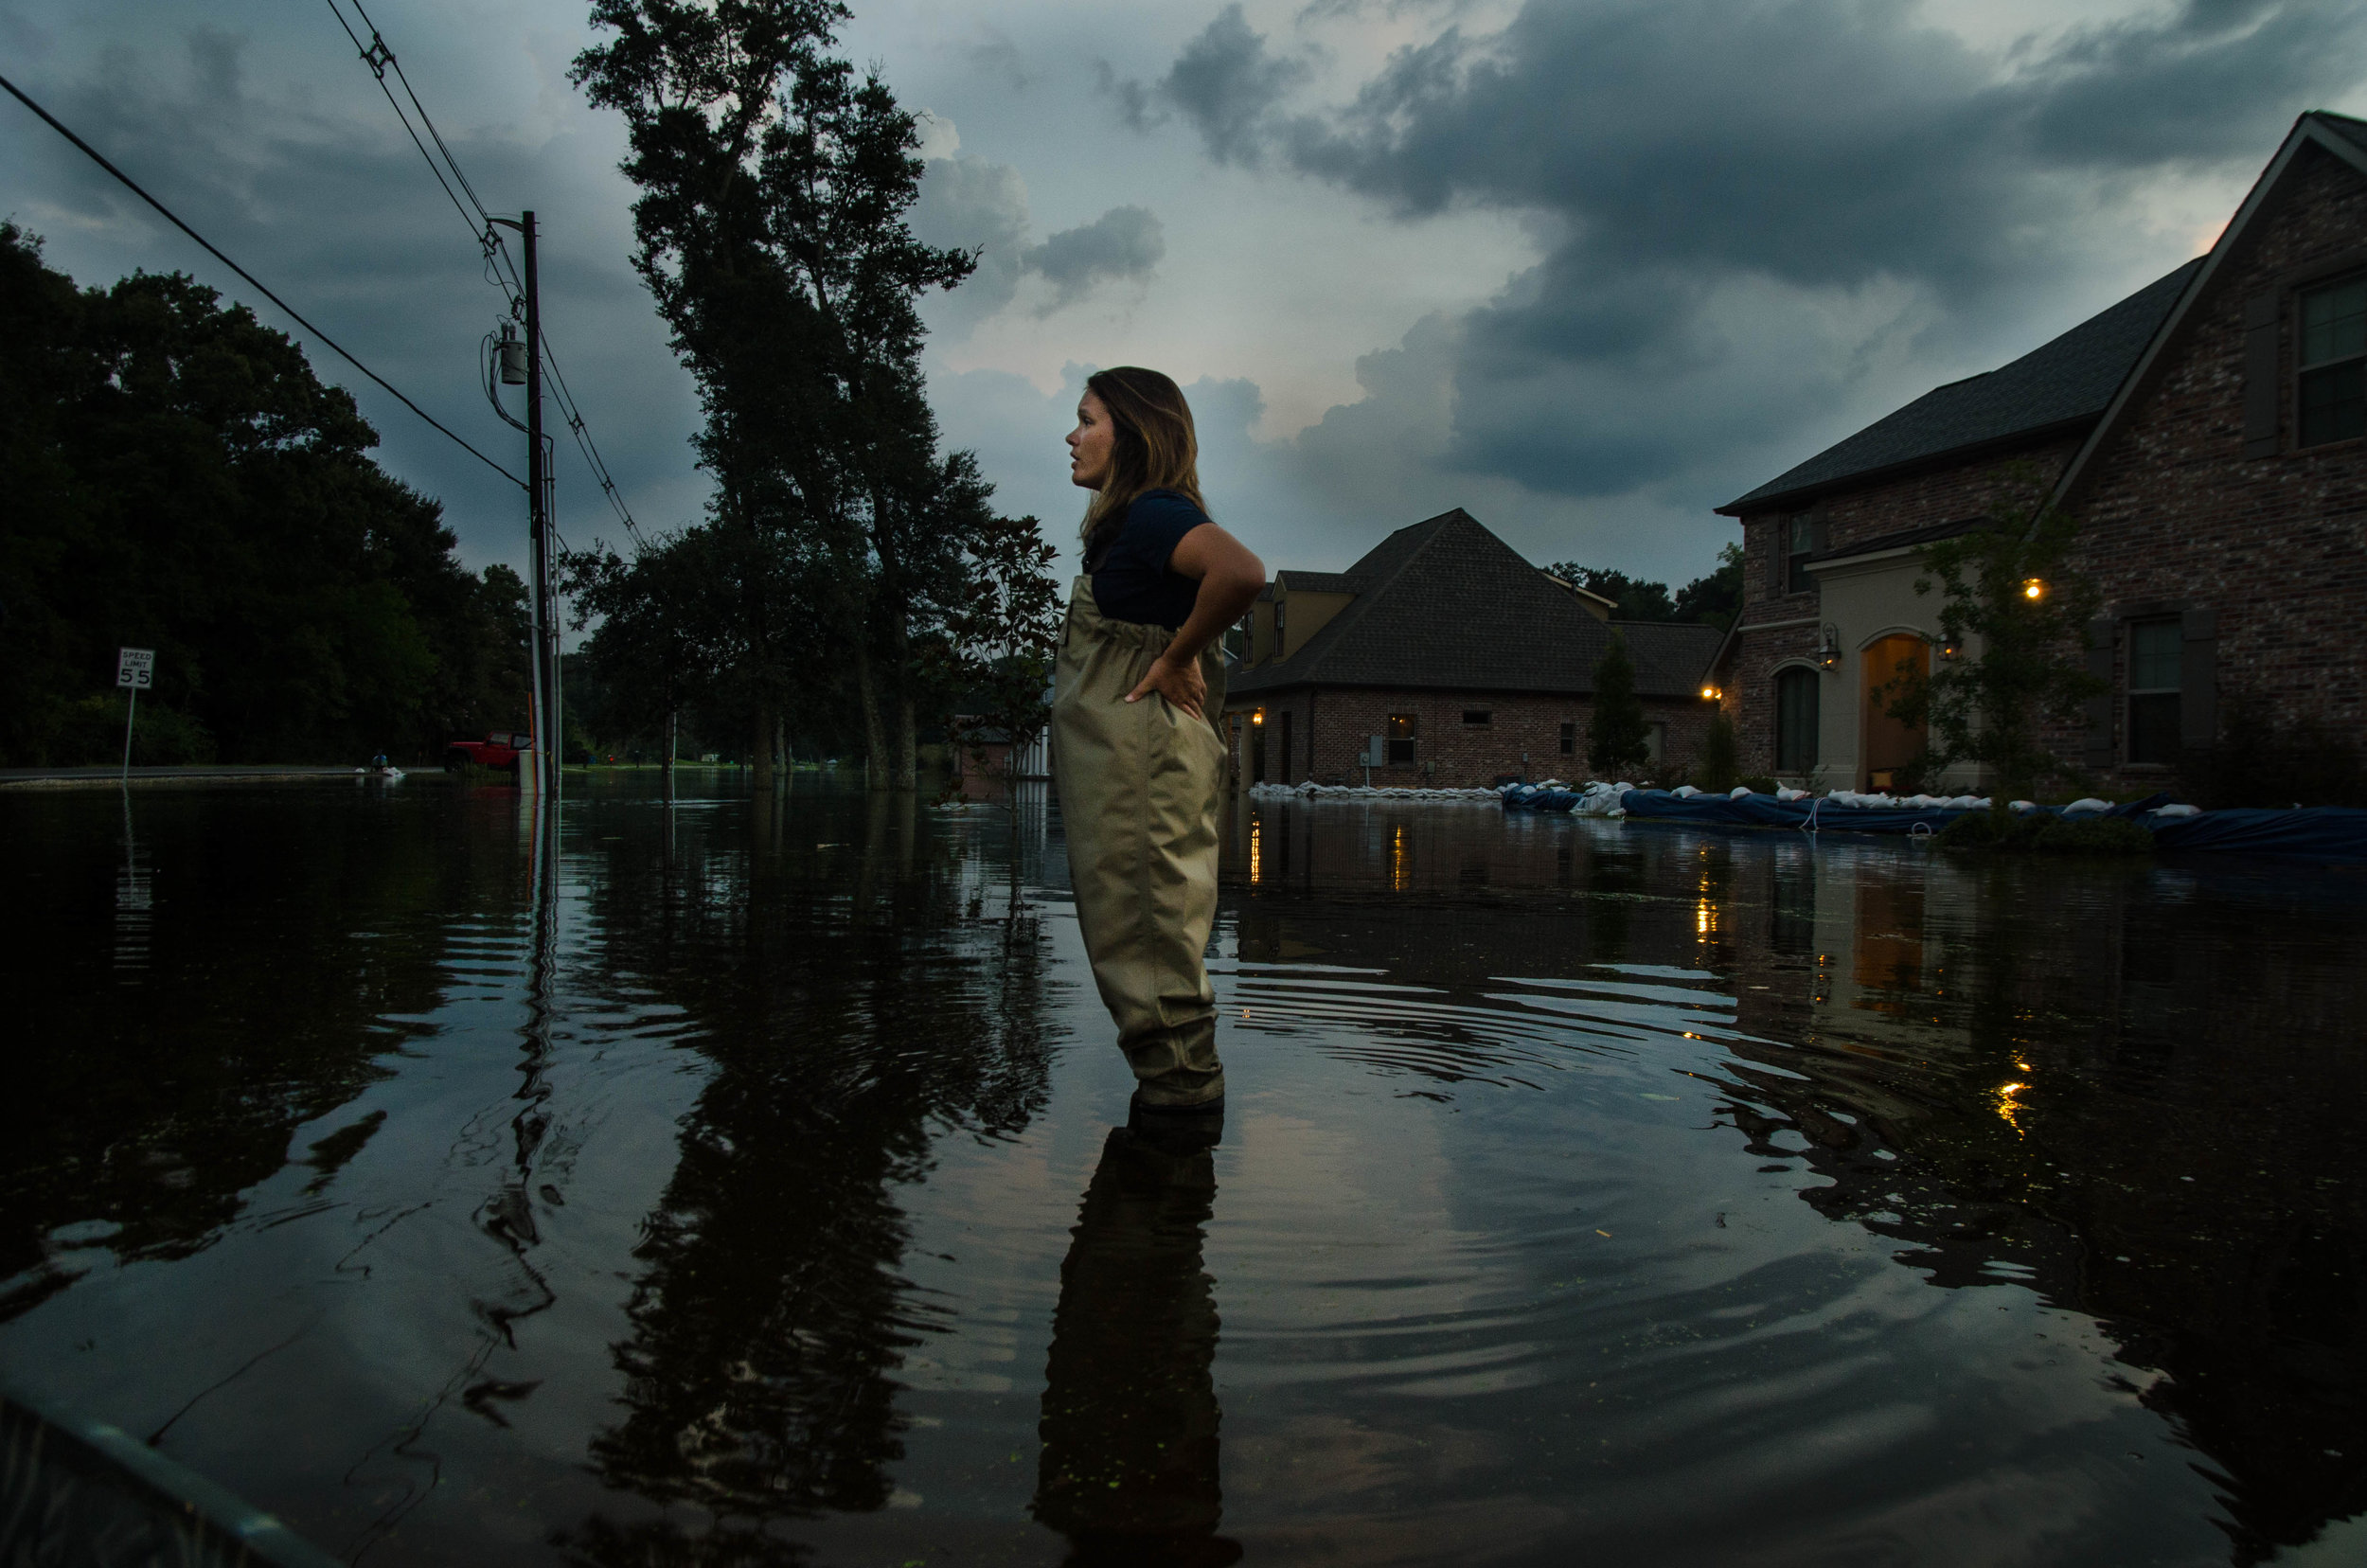 LouisianaFlood_004.jpg